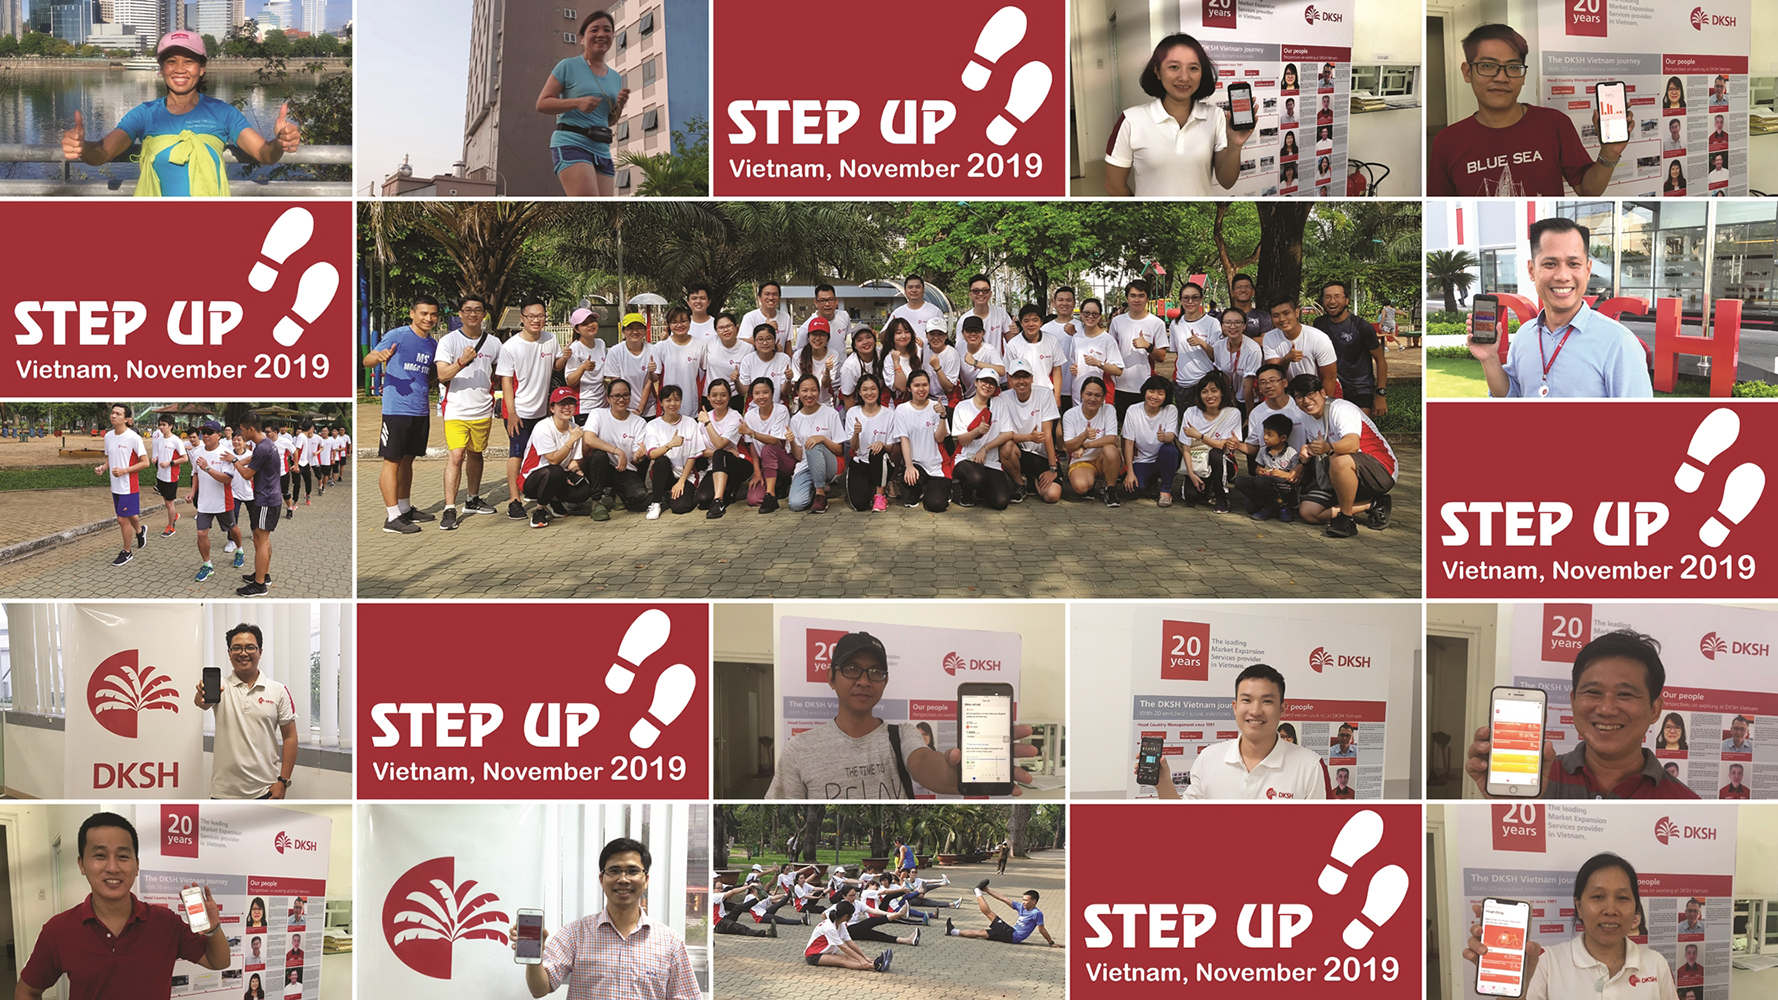 DKSH Vietnam donates every step it takes to social sustainability